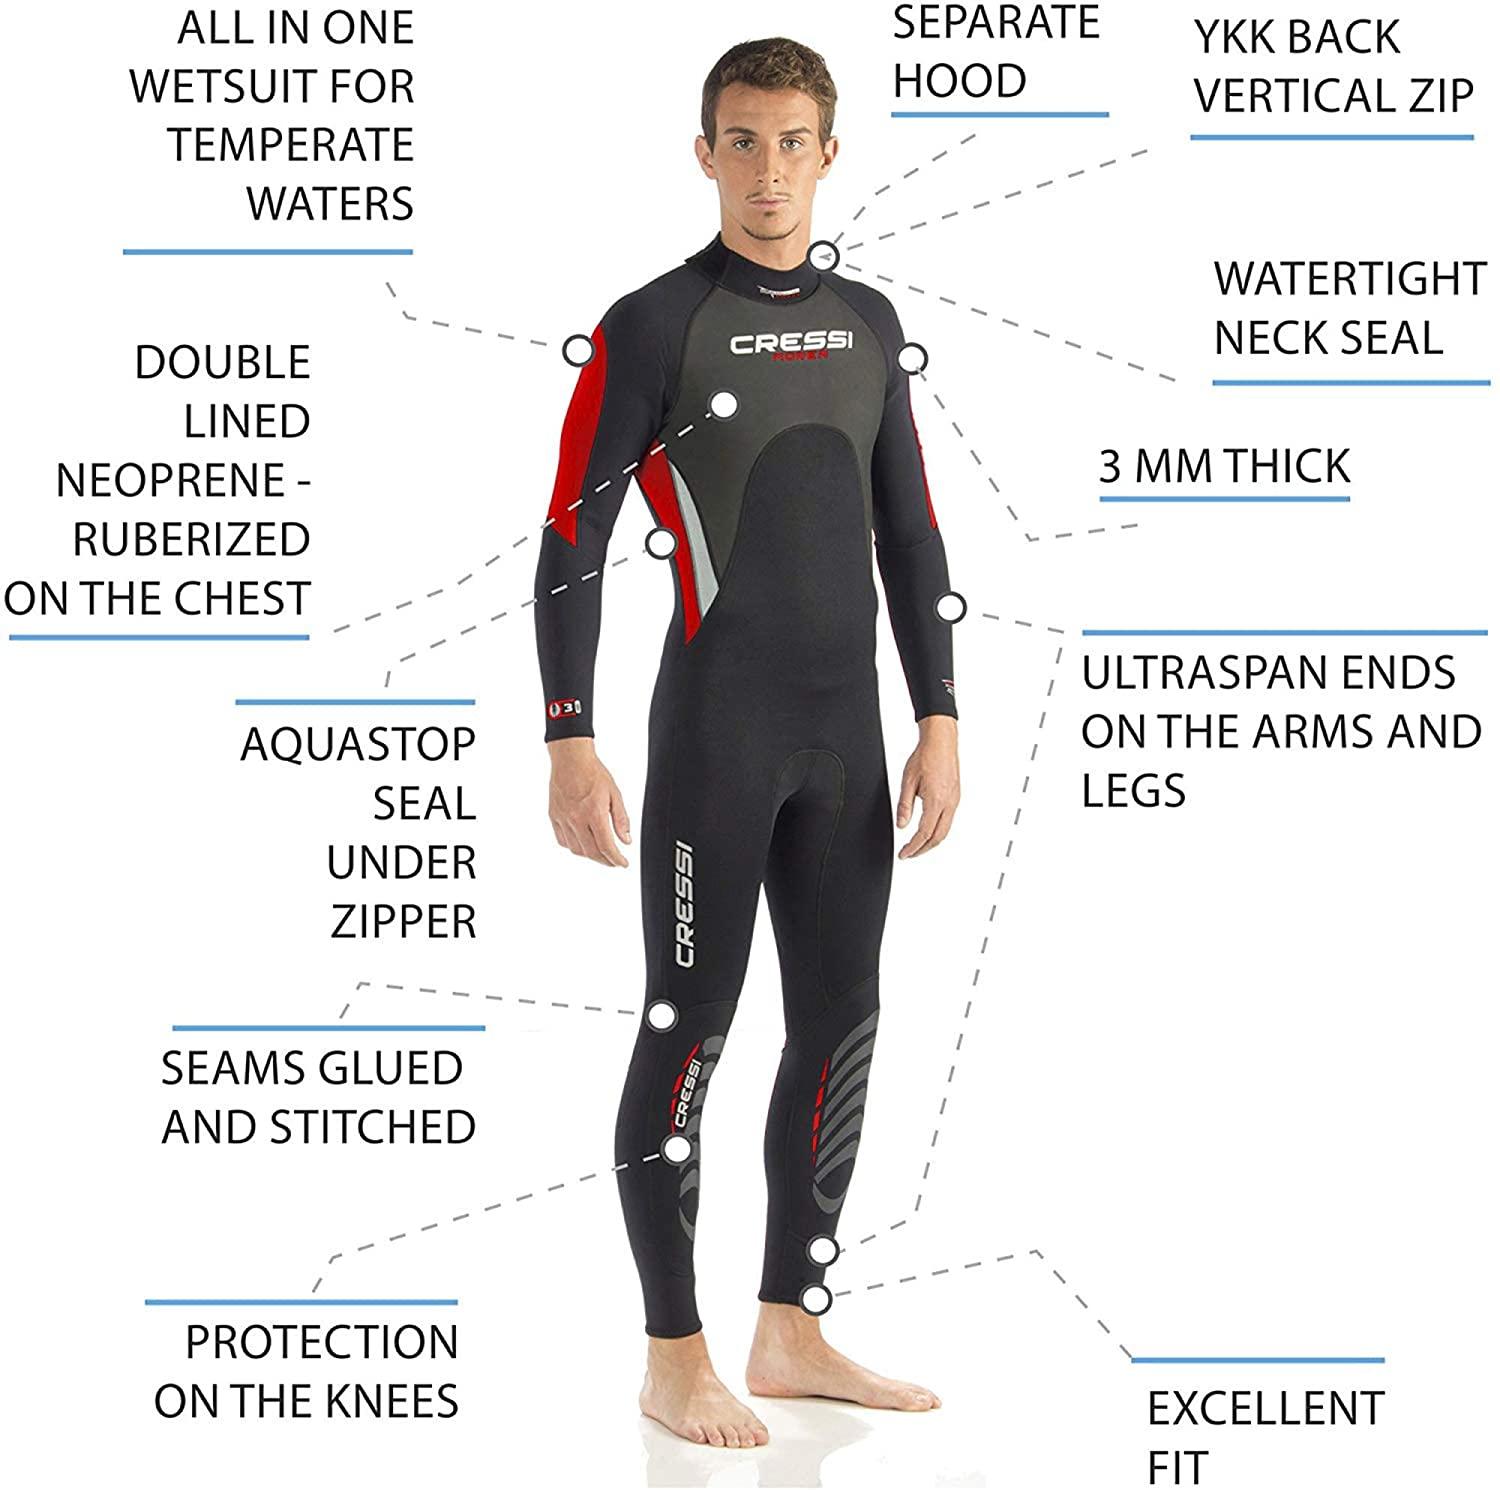 Muta Monopezzo Neoprene Ultrastretch Uomo Cressi Morea Wetsuit Full 3mm